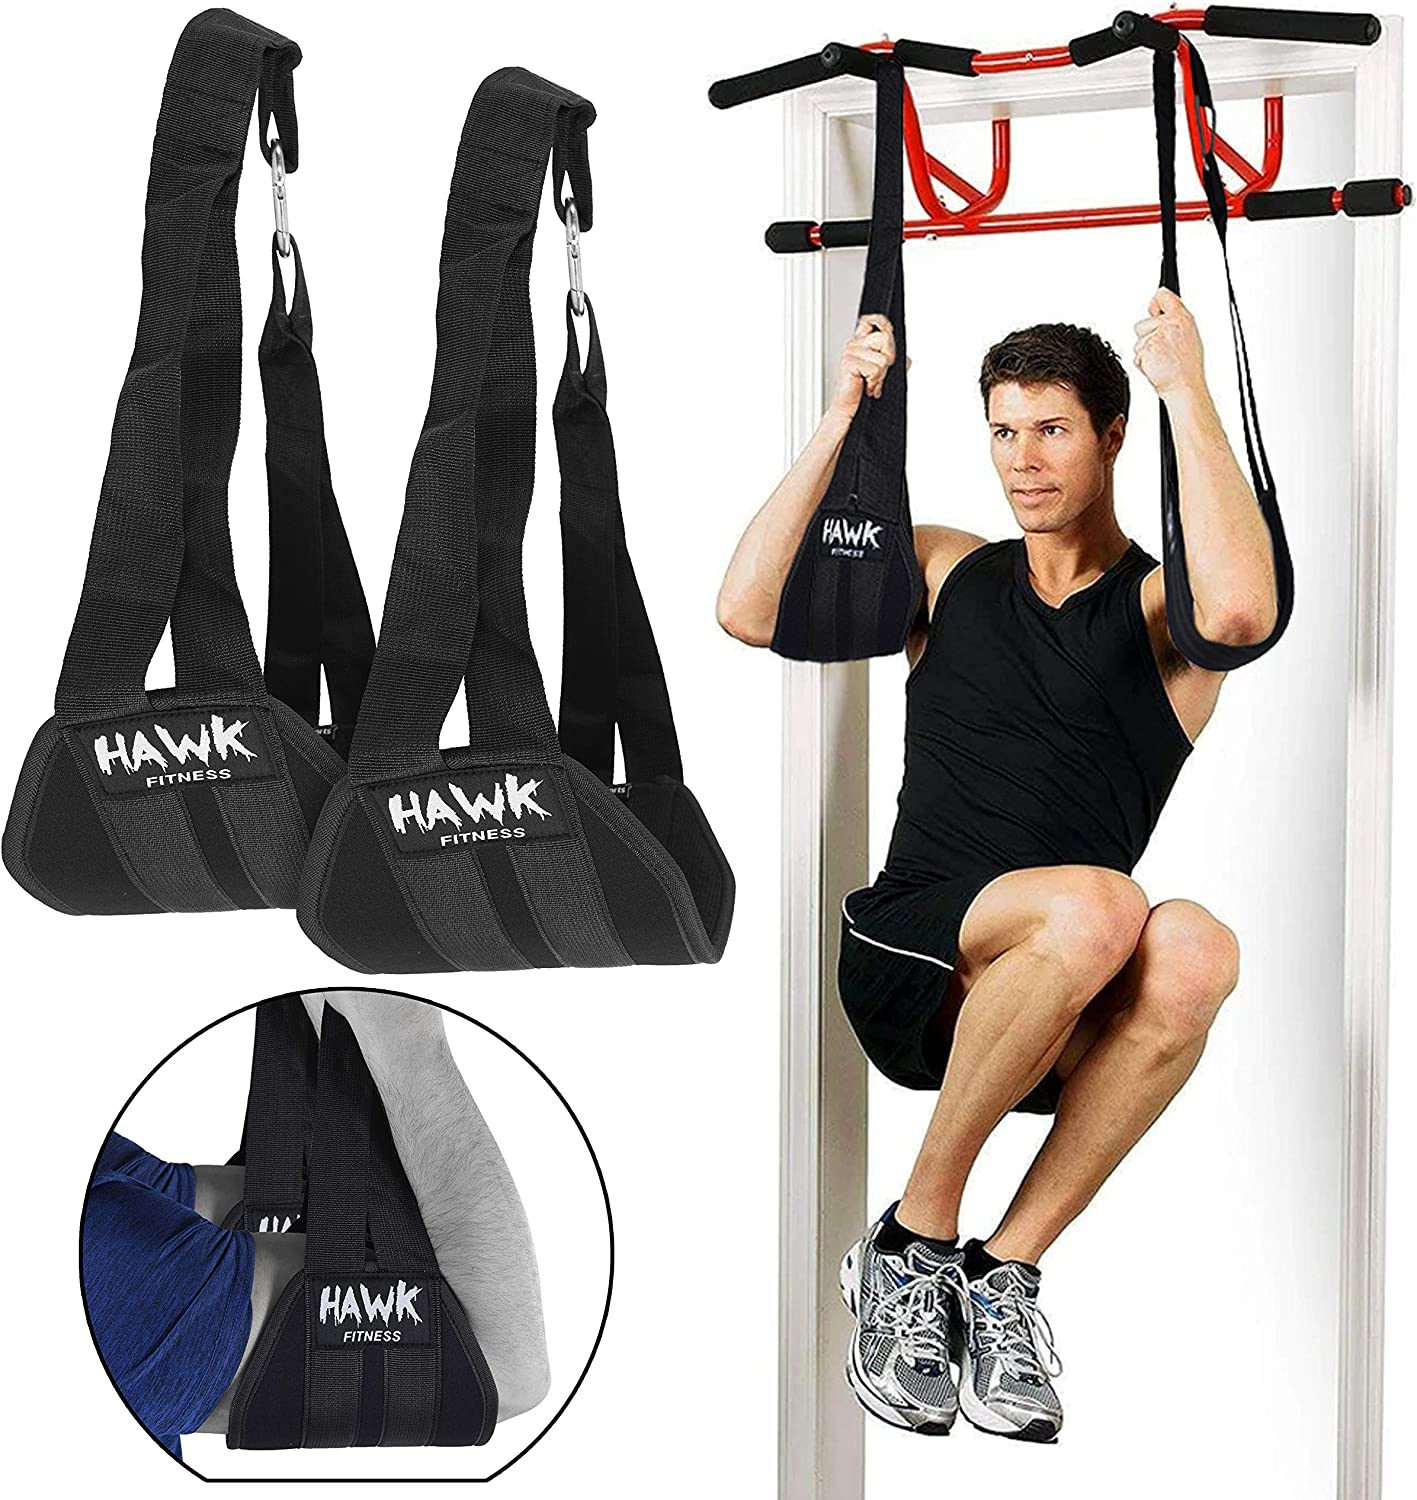 Hawk Sports Ab Straps Hanging Abdominal Slings for Pullup Bar Chinup Exercise Abs Stimulator Trainer Toner Home Gym Fitness Ab Workout Equipment for Men /& Women